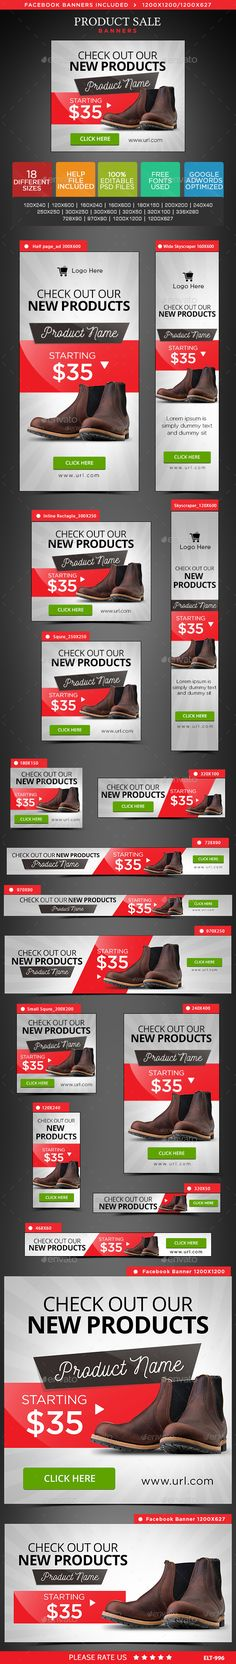 Product Sale Web Banners Template PSD #design #ad Download: http://graphicriver.net/item/product-sale-banners/14196770?ref=ksioks